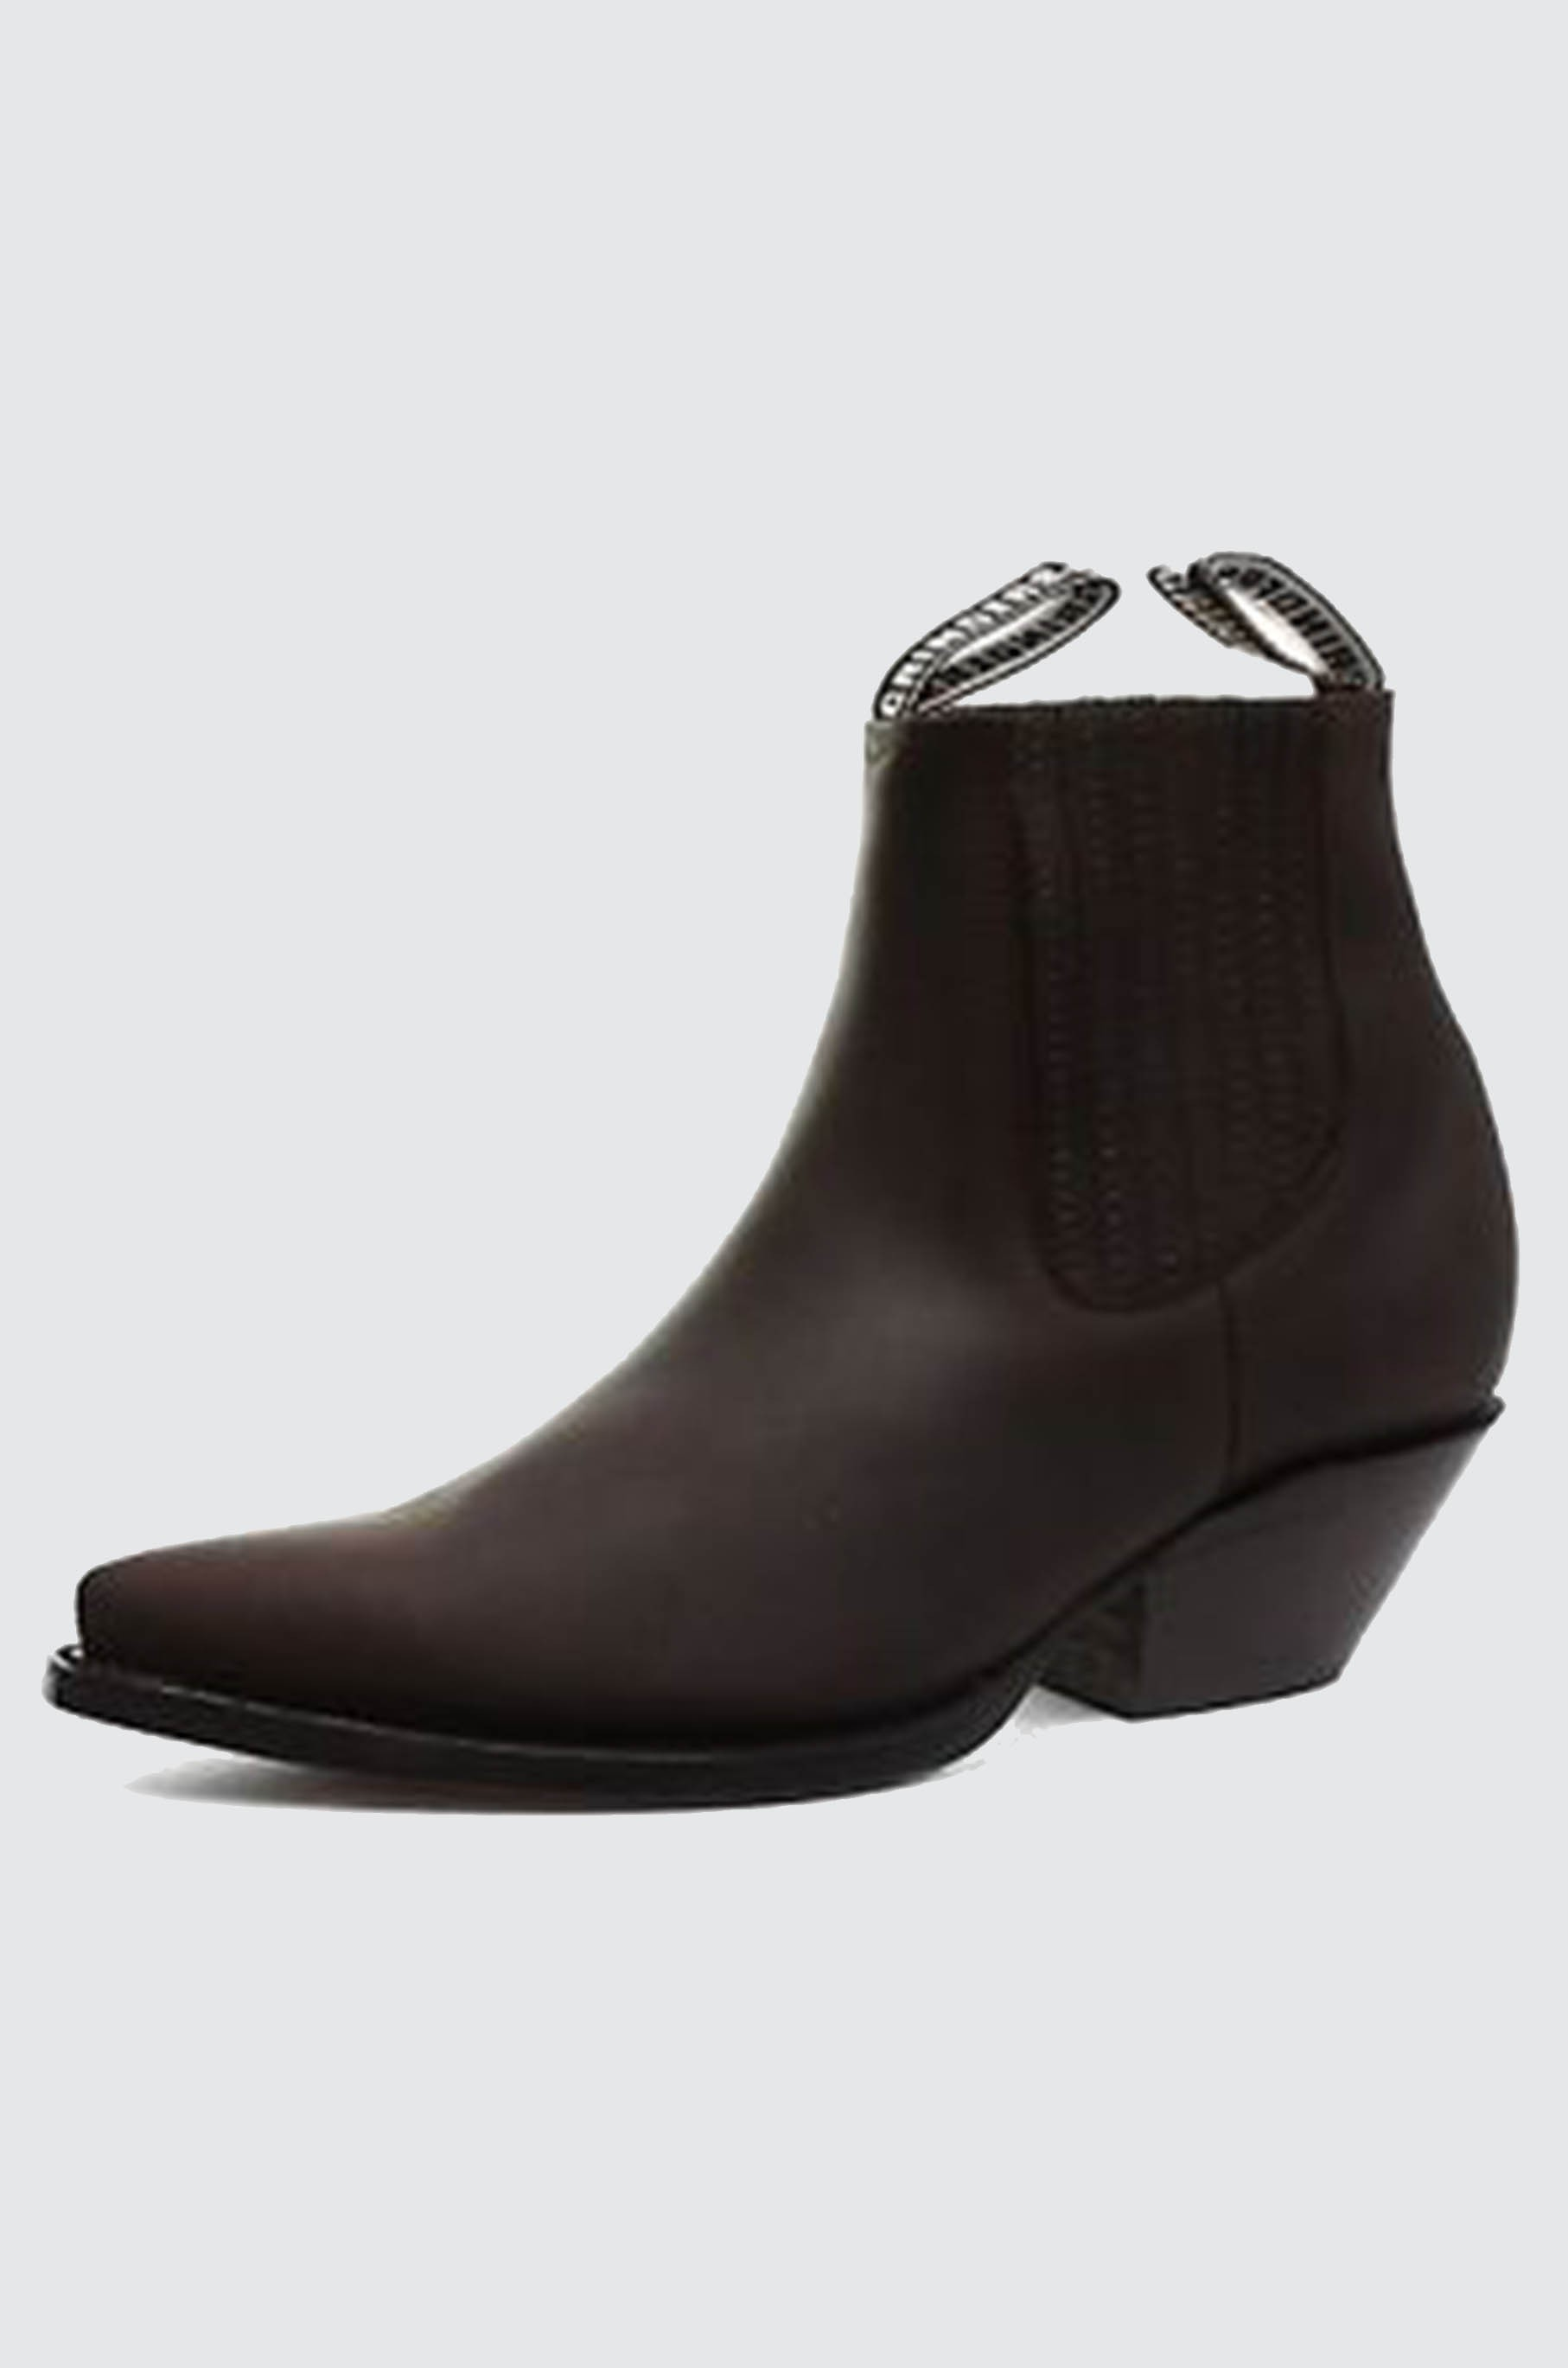 Grinders Mustang Brown Real Leather Cowboy Boot Slip On Cuban ... 40b2d2ad3daa